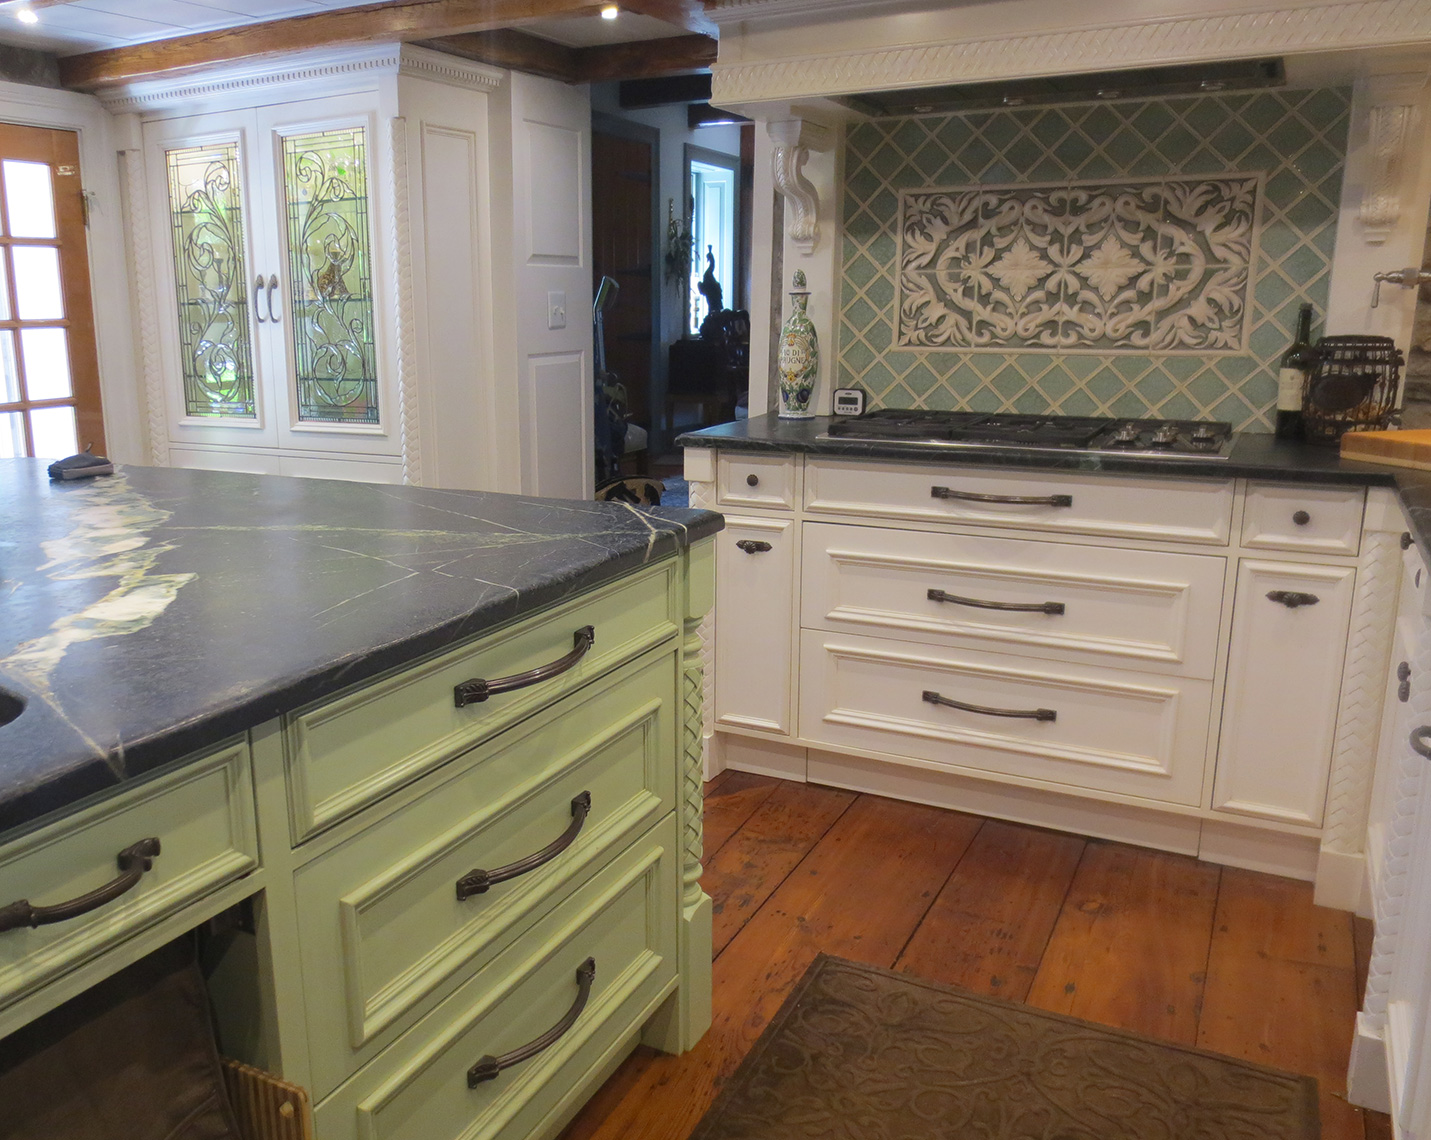 custom kitchen remodels bucks county nj-Traditional, classic custom cabinets, painted, carvings 3